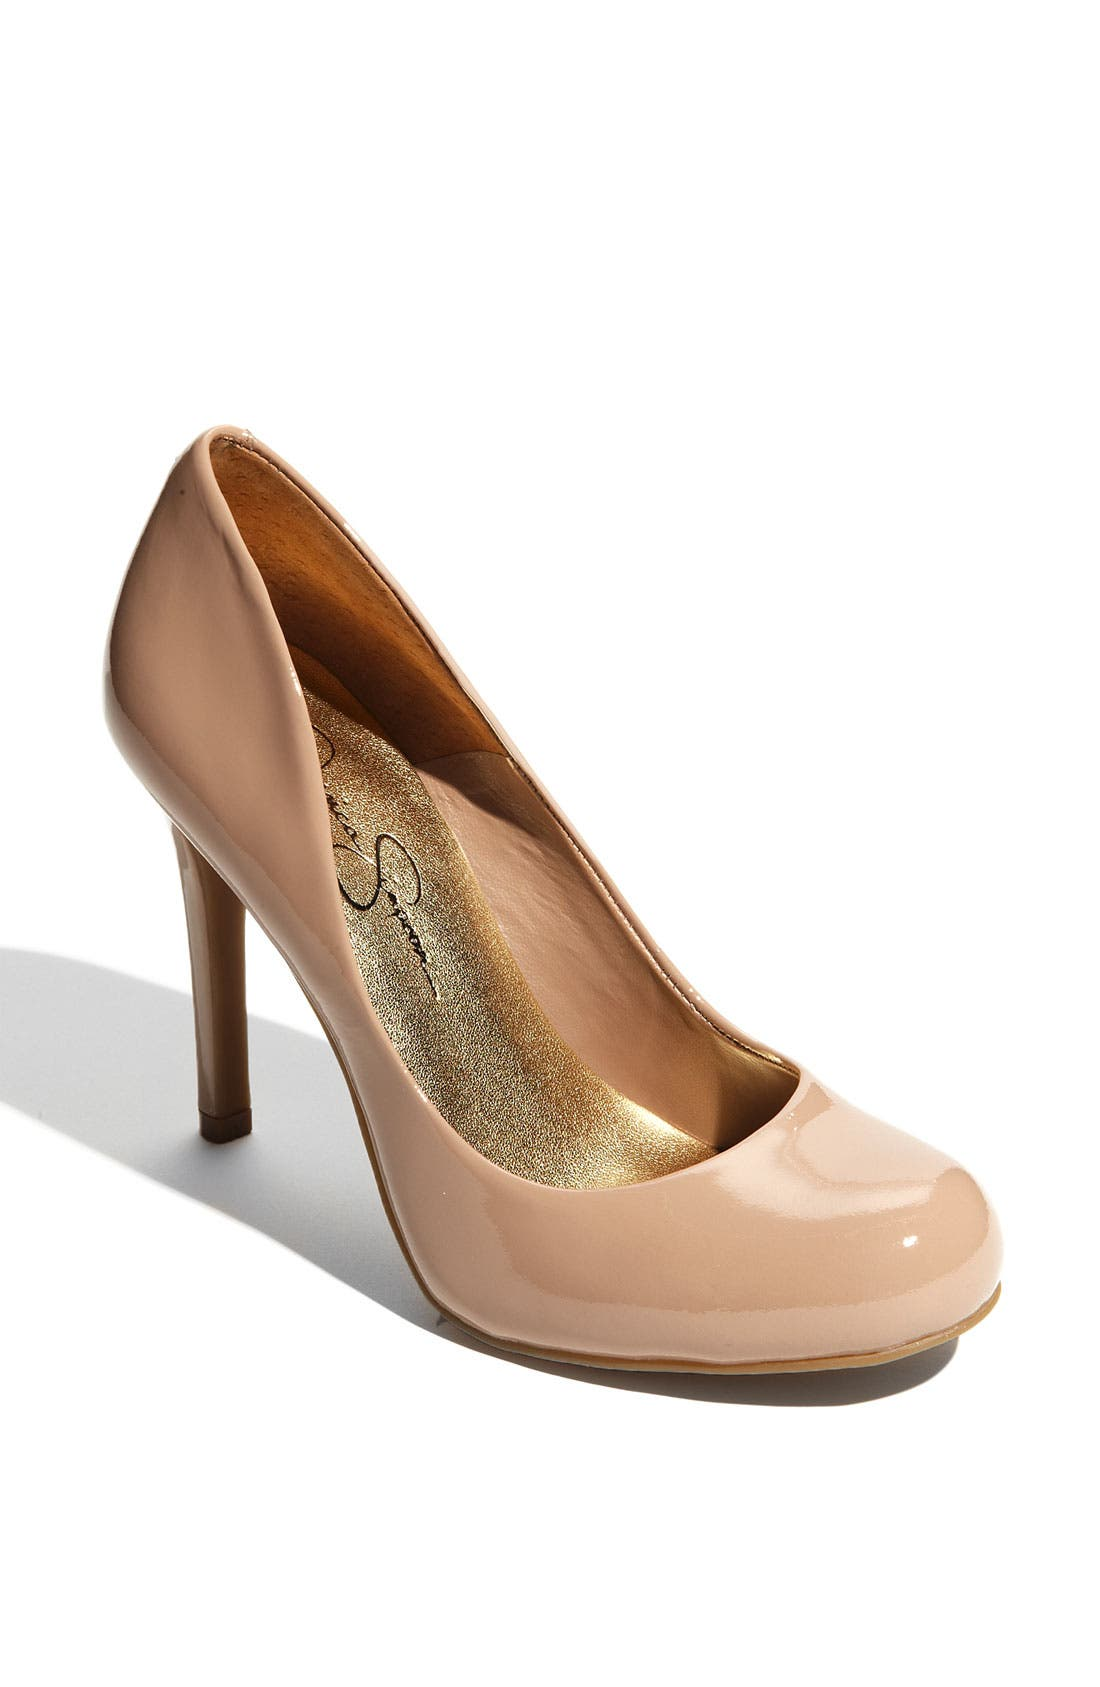 Main Image - Jessica Simpson 'Calie' Pump